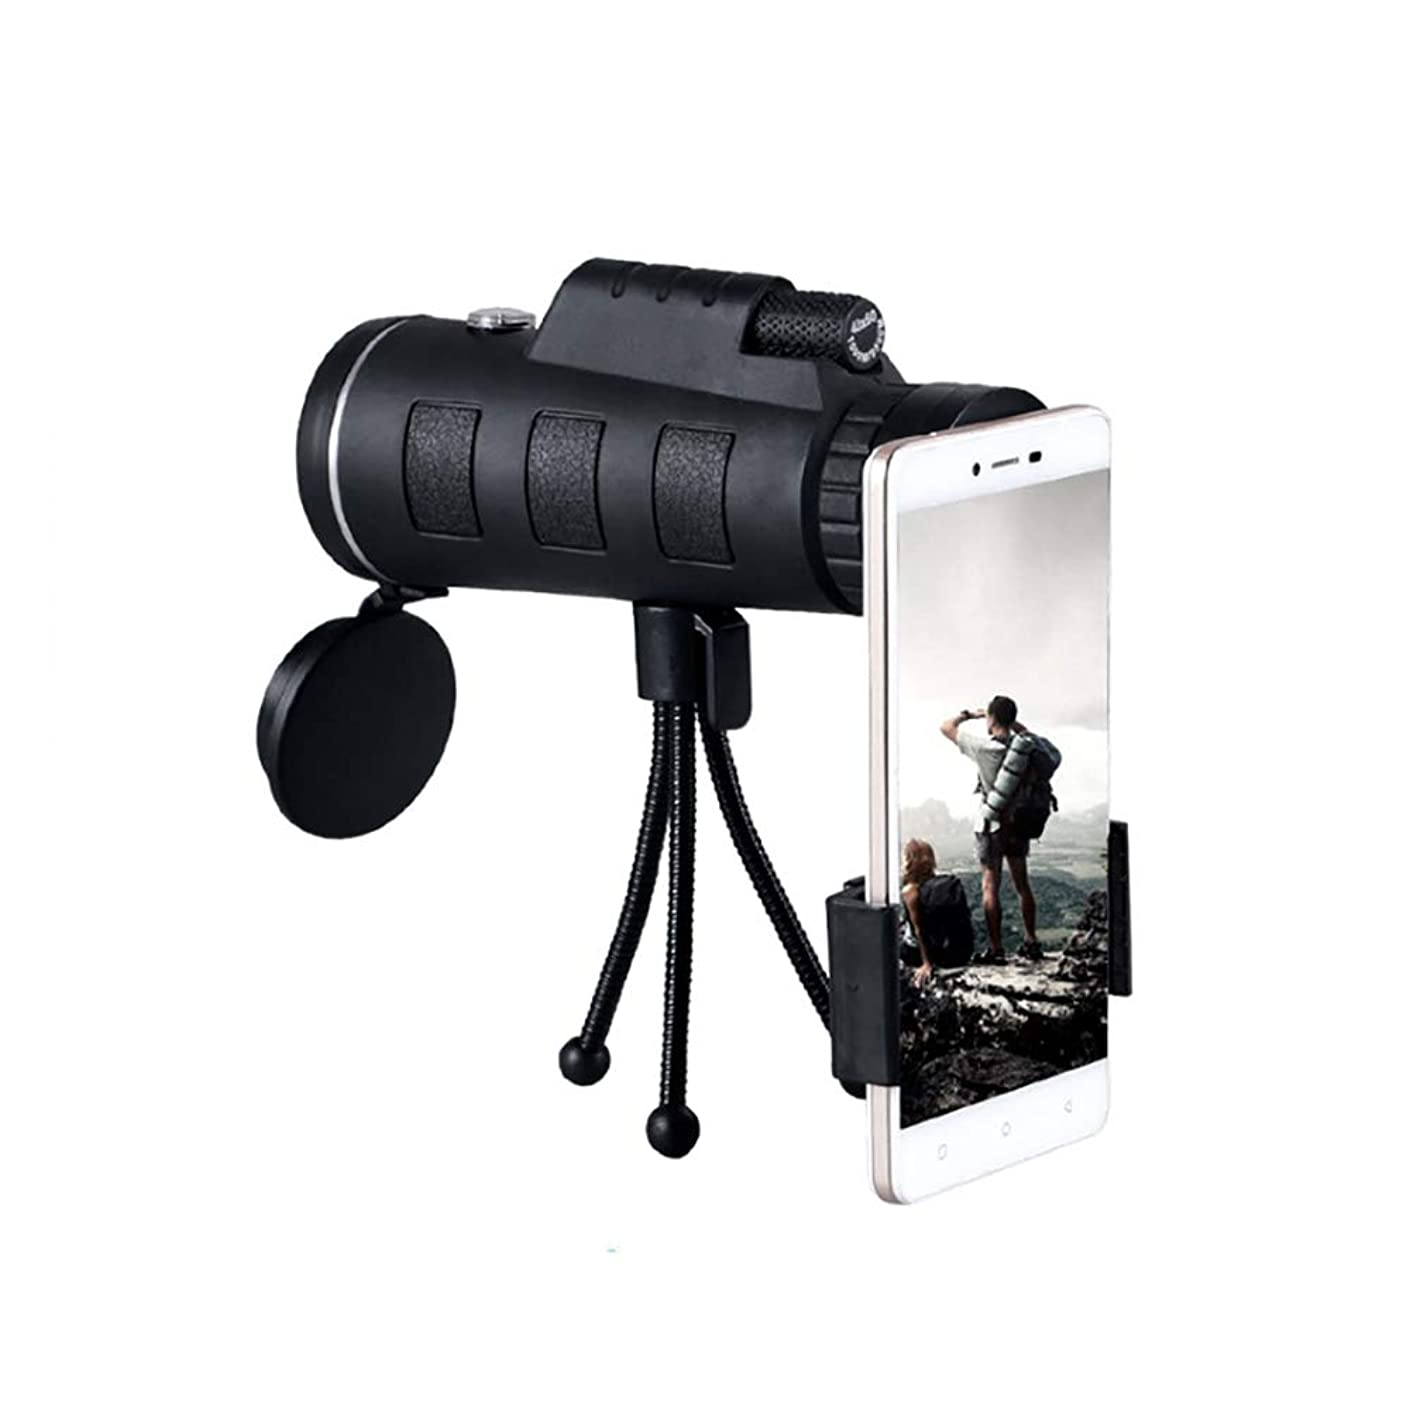 LH HD Prism Monocular, 40X60 25Mm Large Caliber Eyepiece BK4 Prism Fully Coated Lens, for Concert Theater Opera, Tripod Included